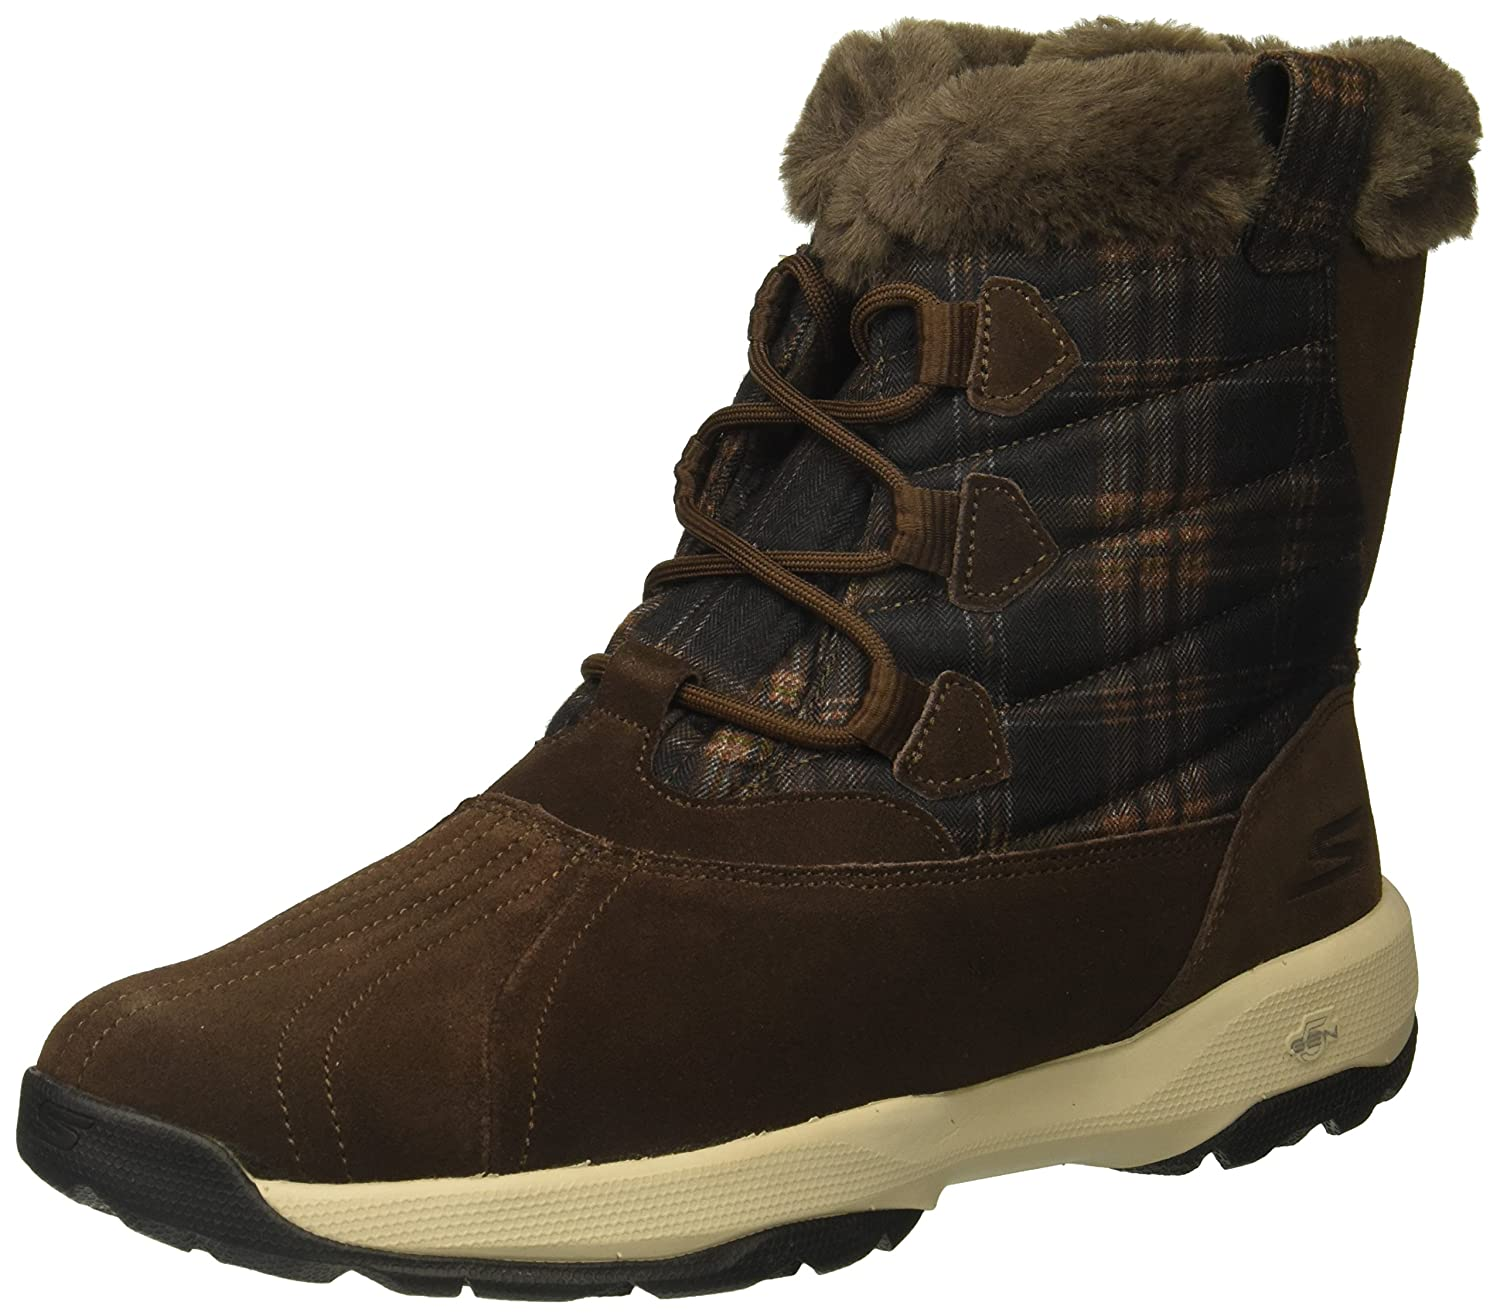 Skechers SkechersGo Walk Outdoors - Crest - Go Walk Outdoors - Crest Damen  36 EU|Schokoladenbraun